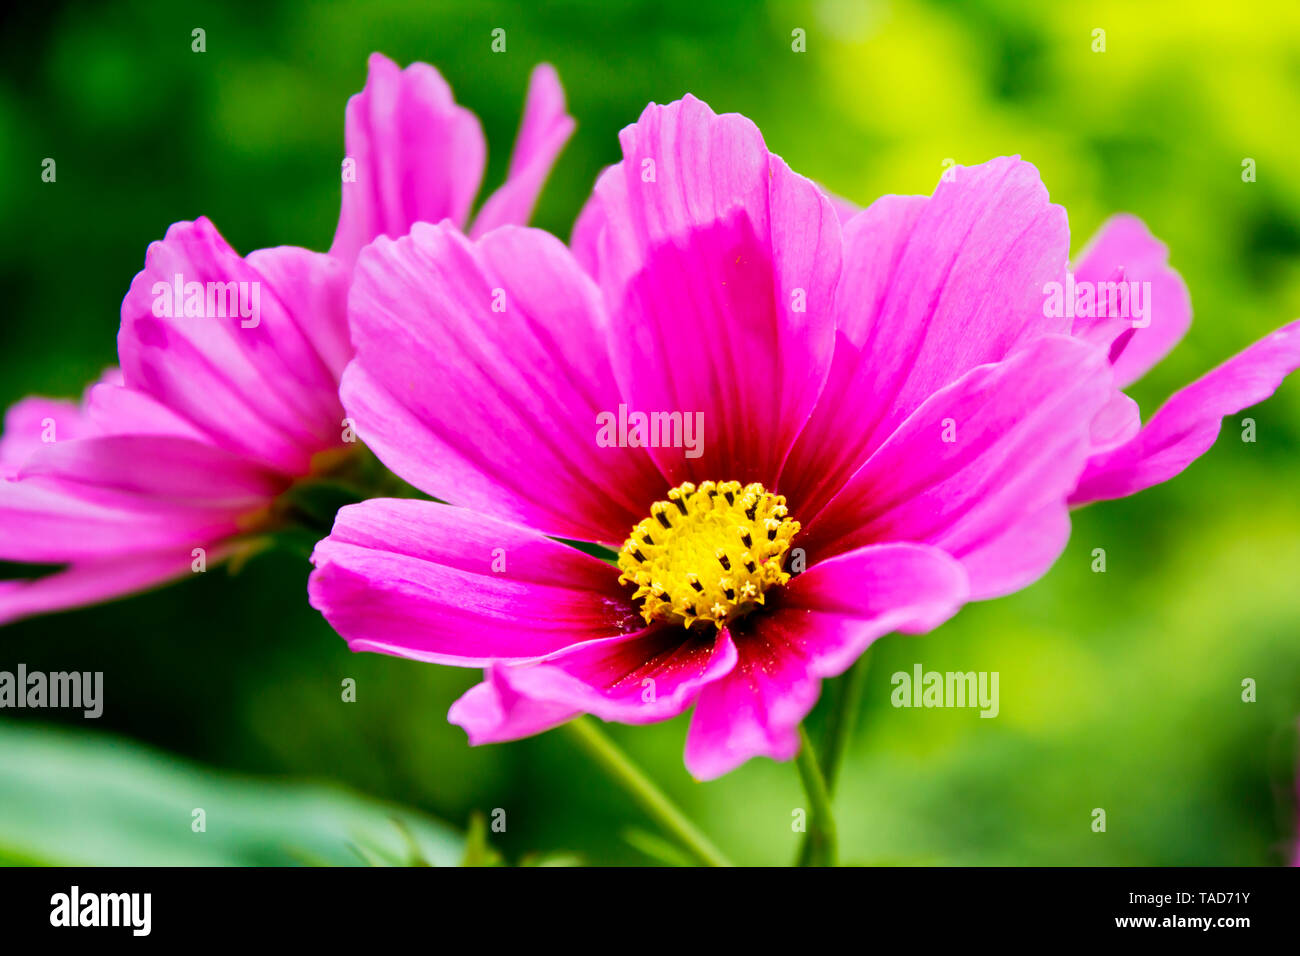 Pink cosmea flowers, close up - Stock Image